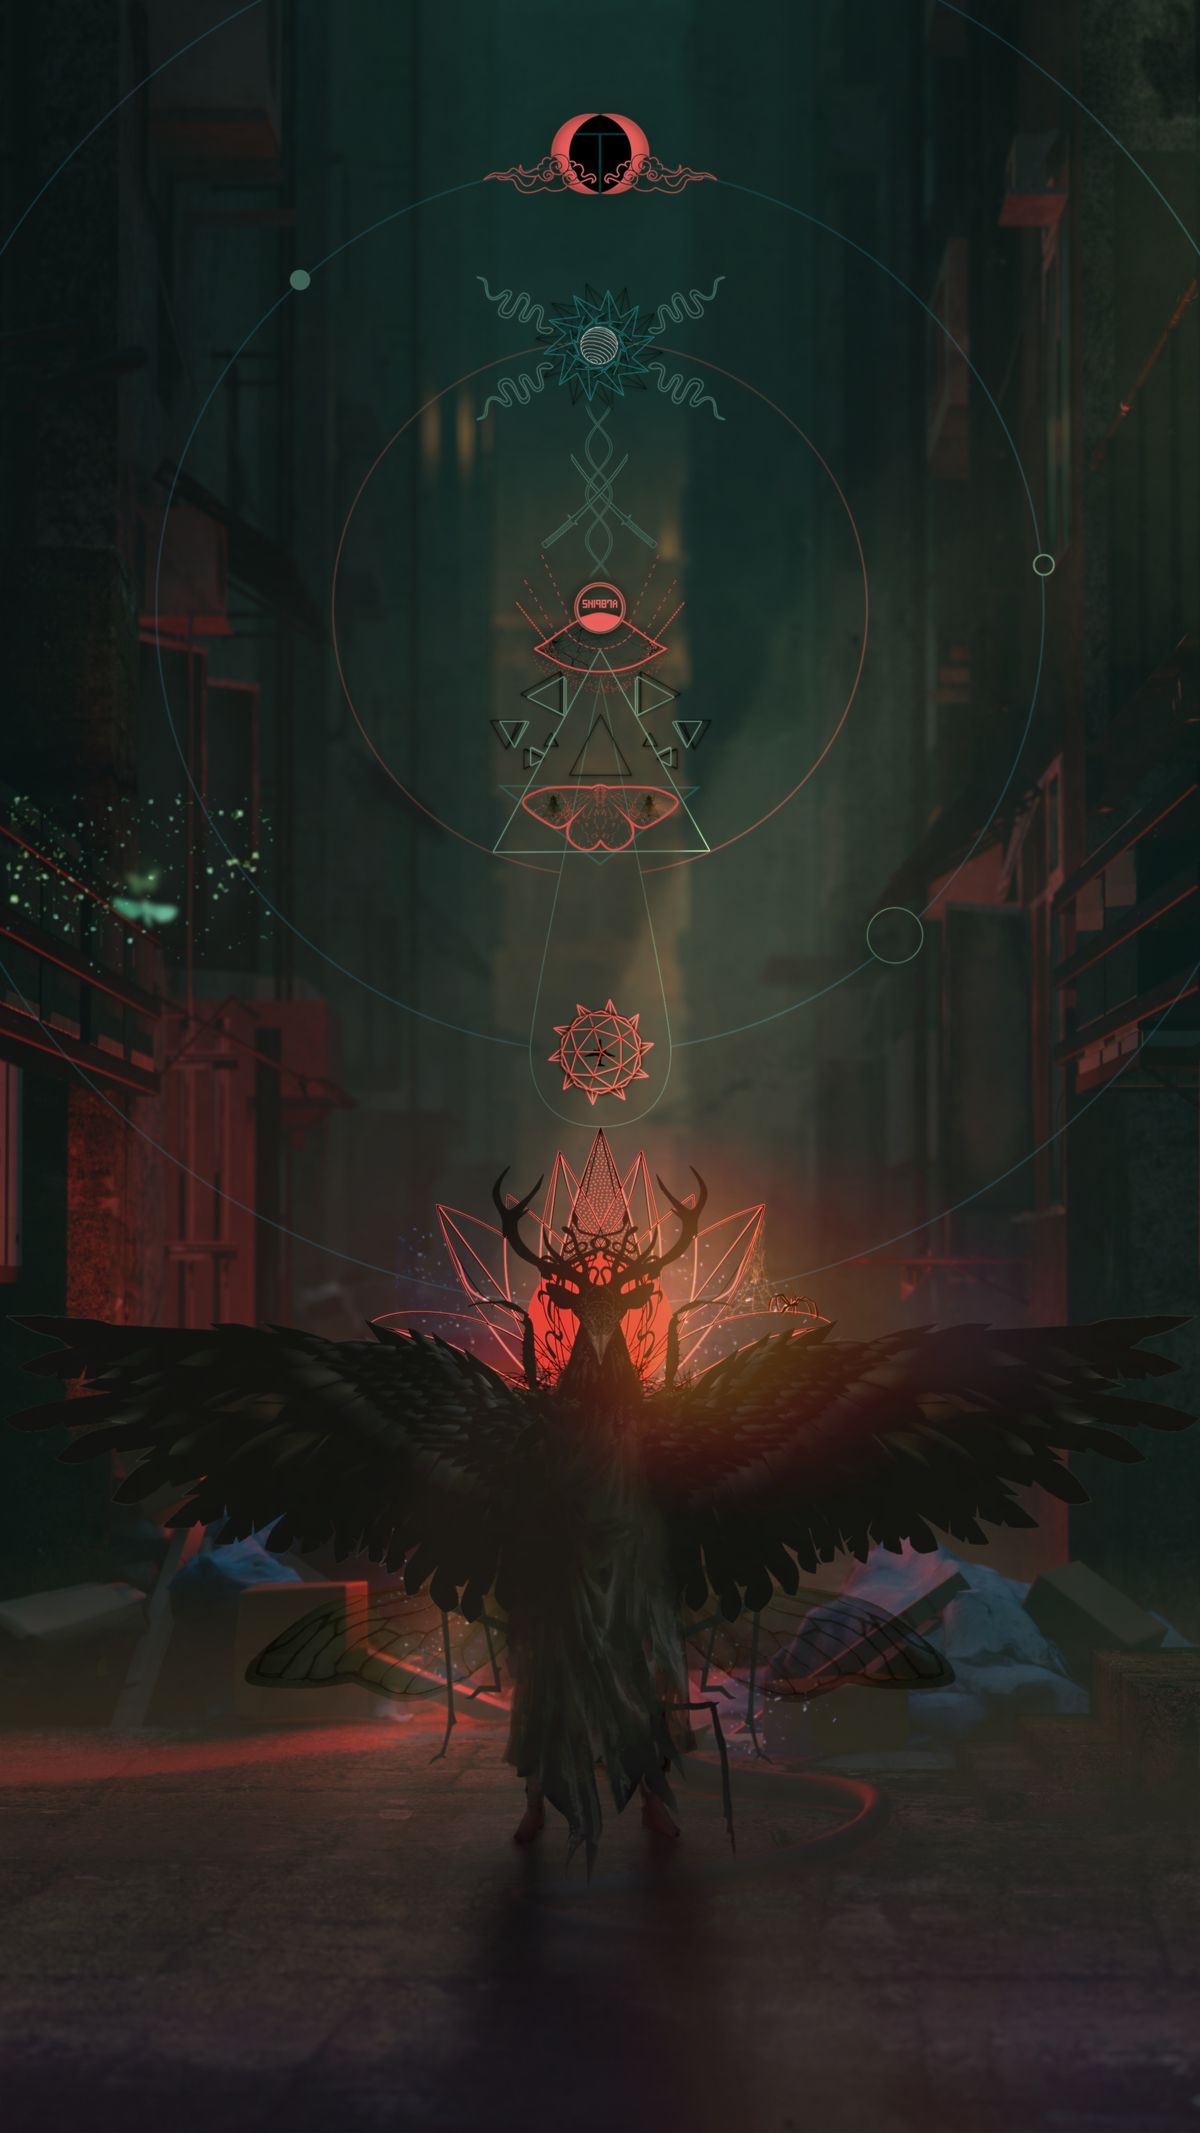 Artwork for an unannounced title from Bokeh Game Studio featuring occult symbols and a character with horns